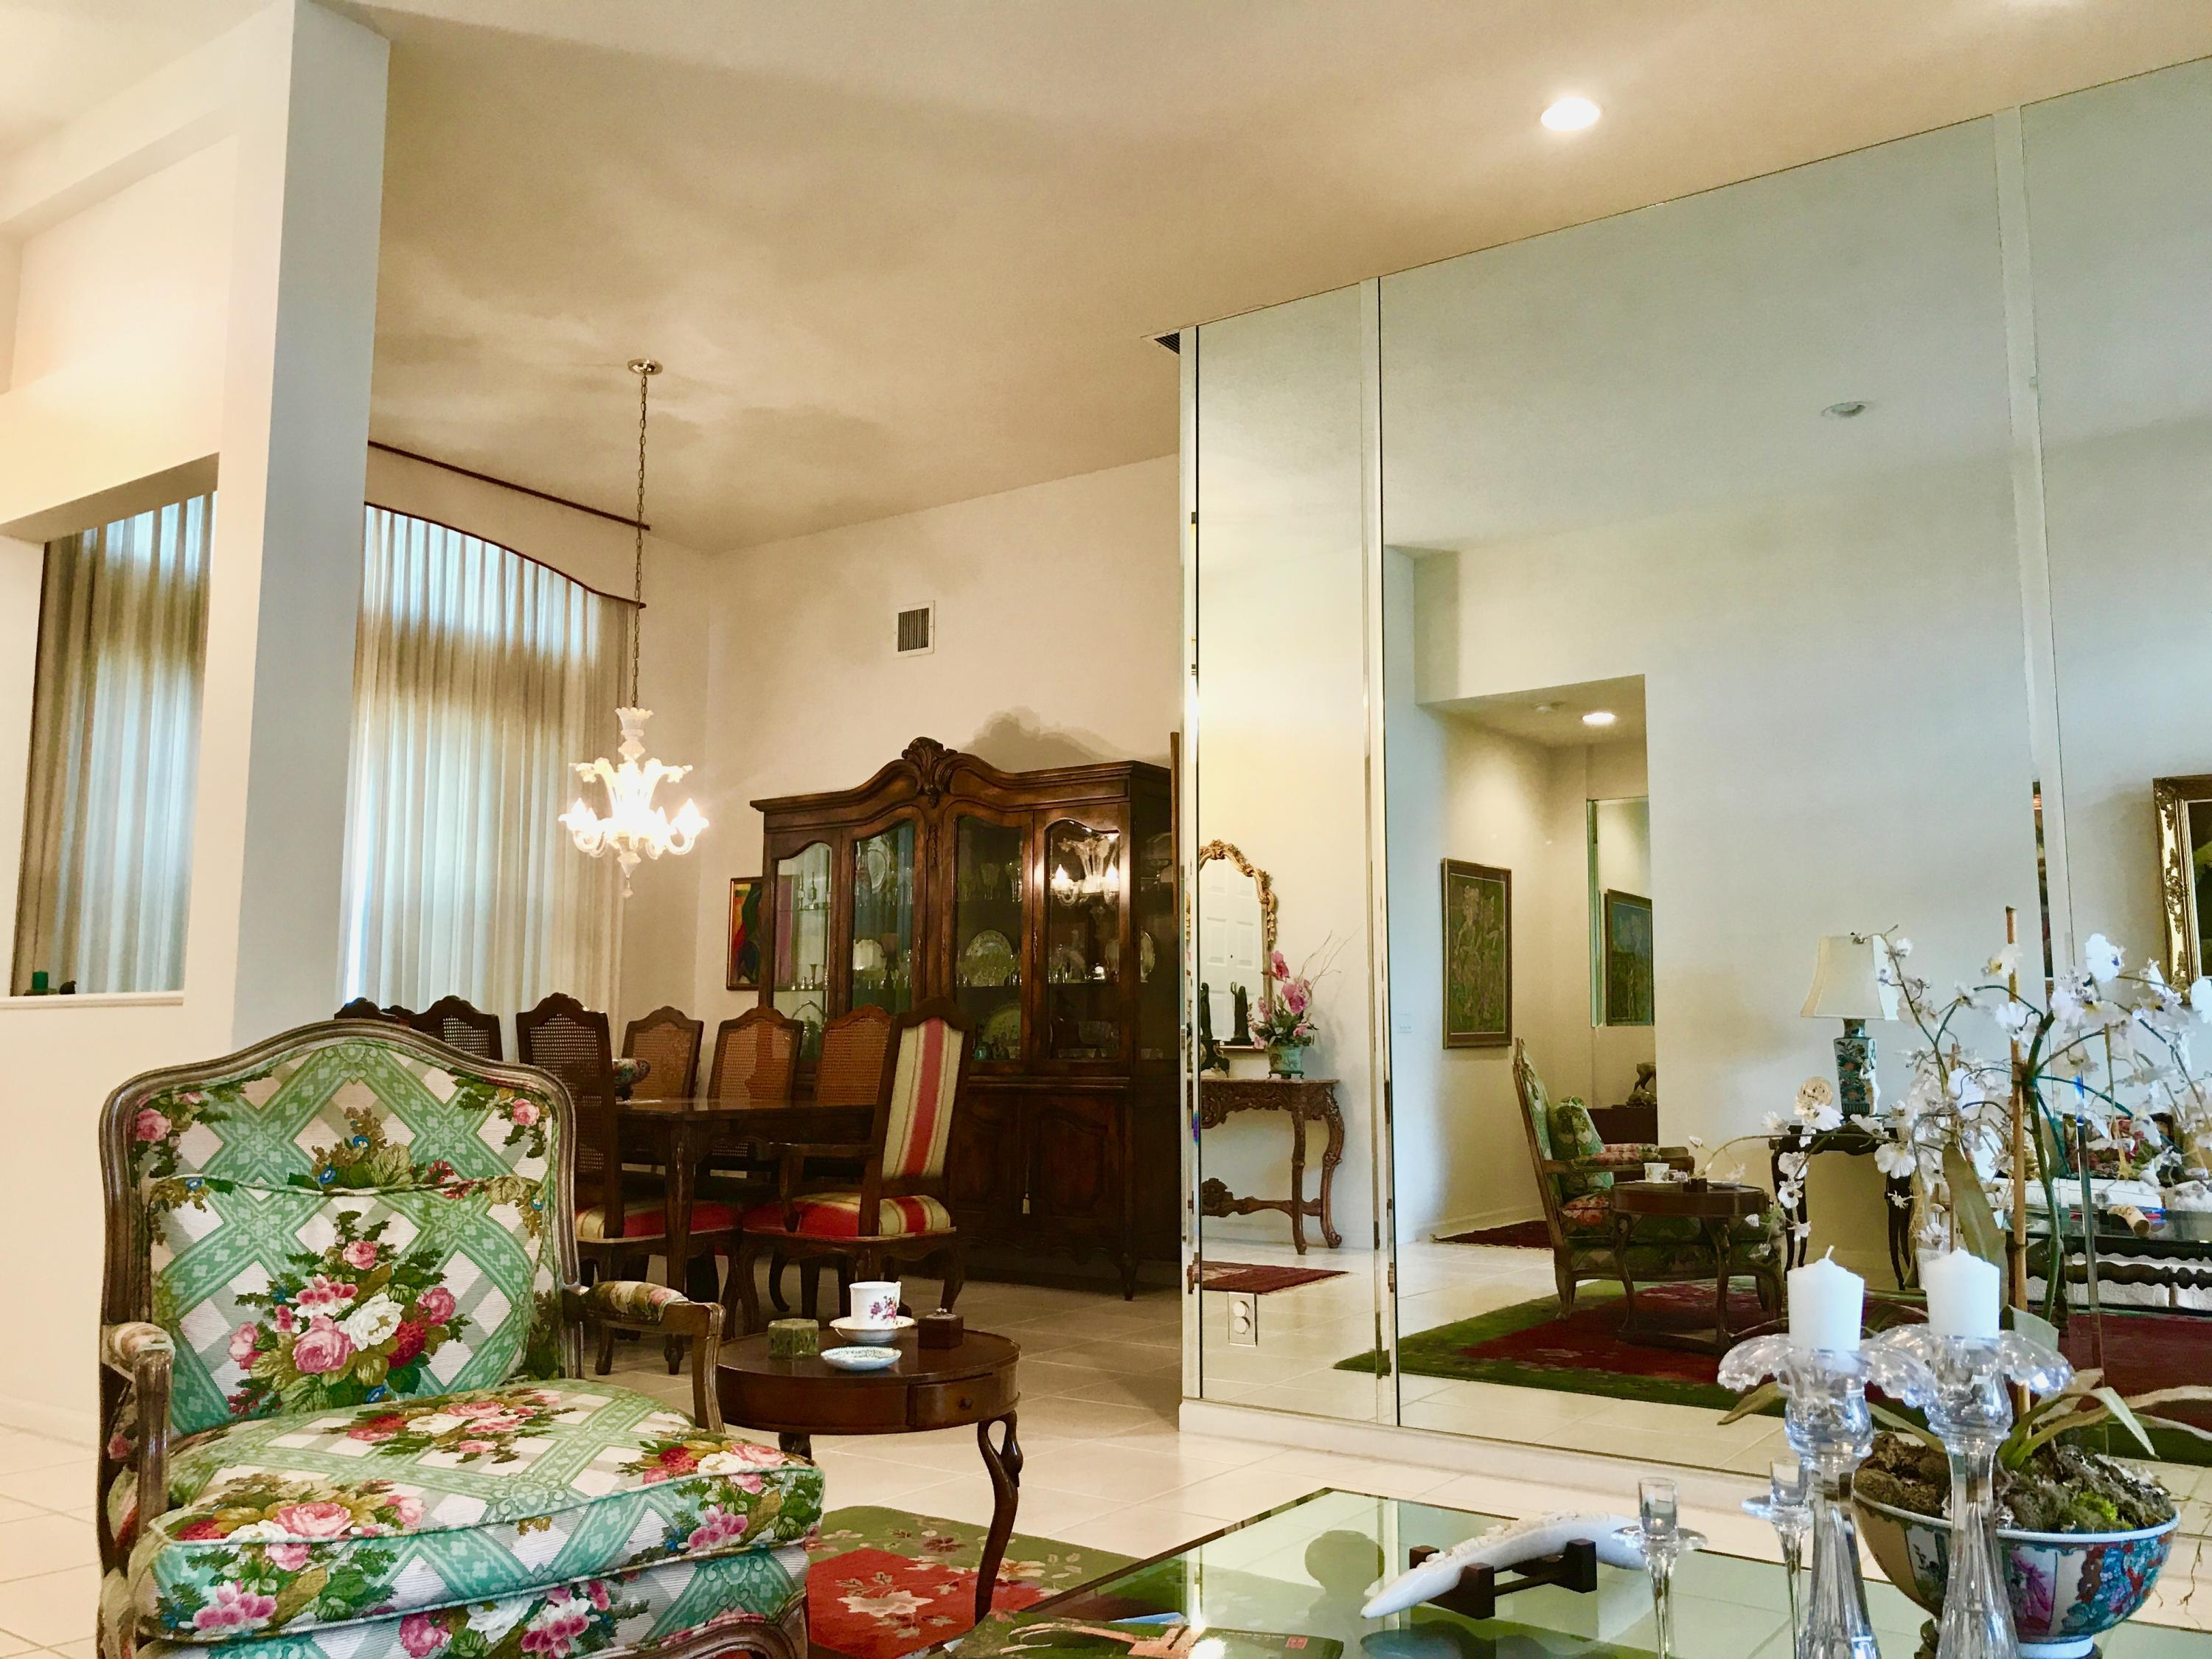 Living room/dining room view